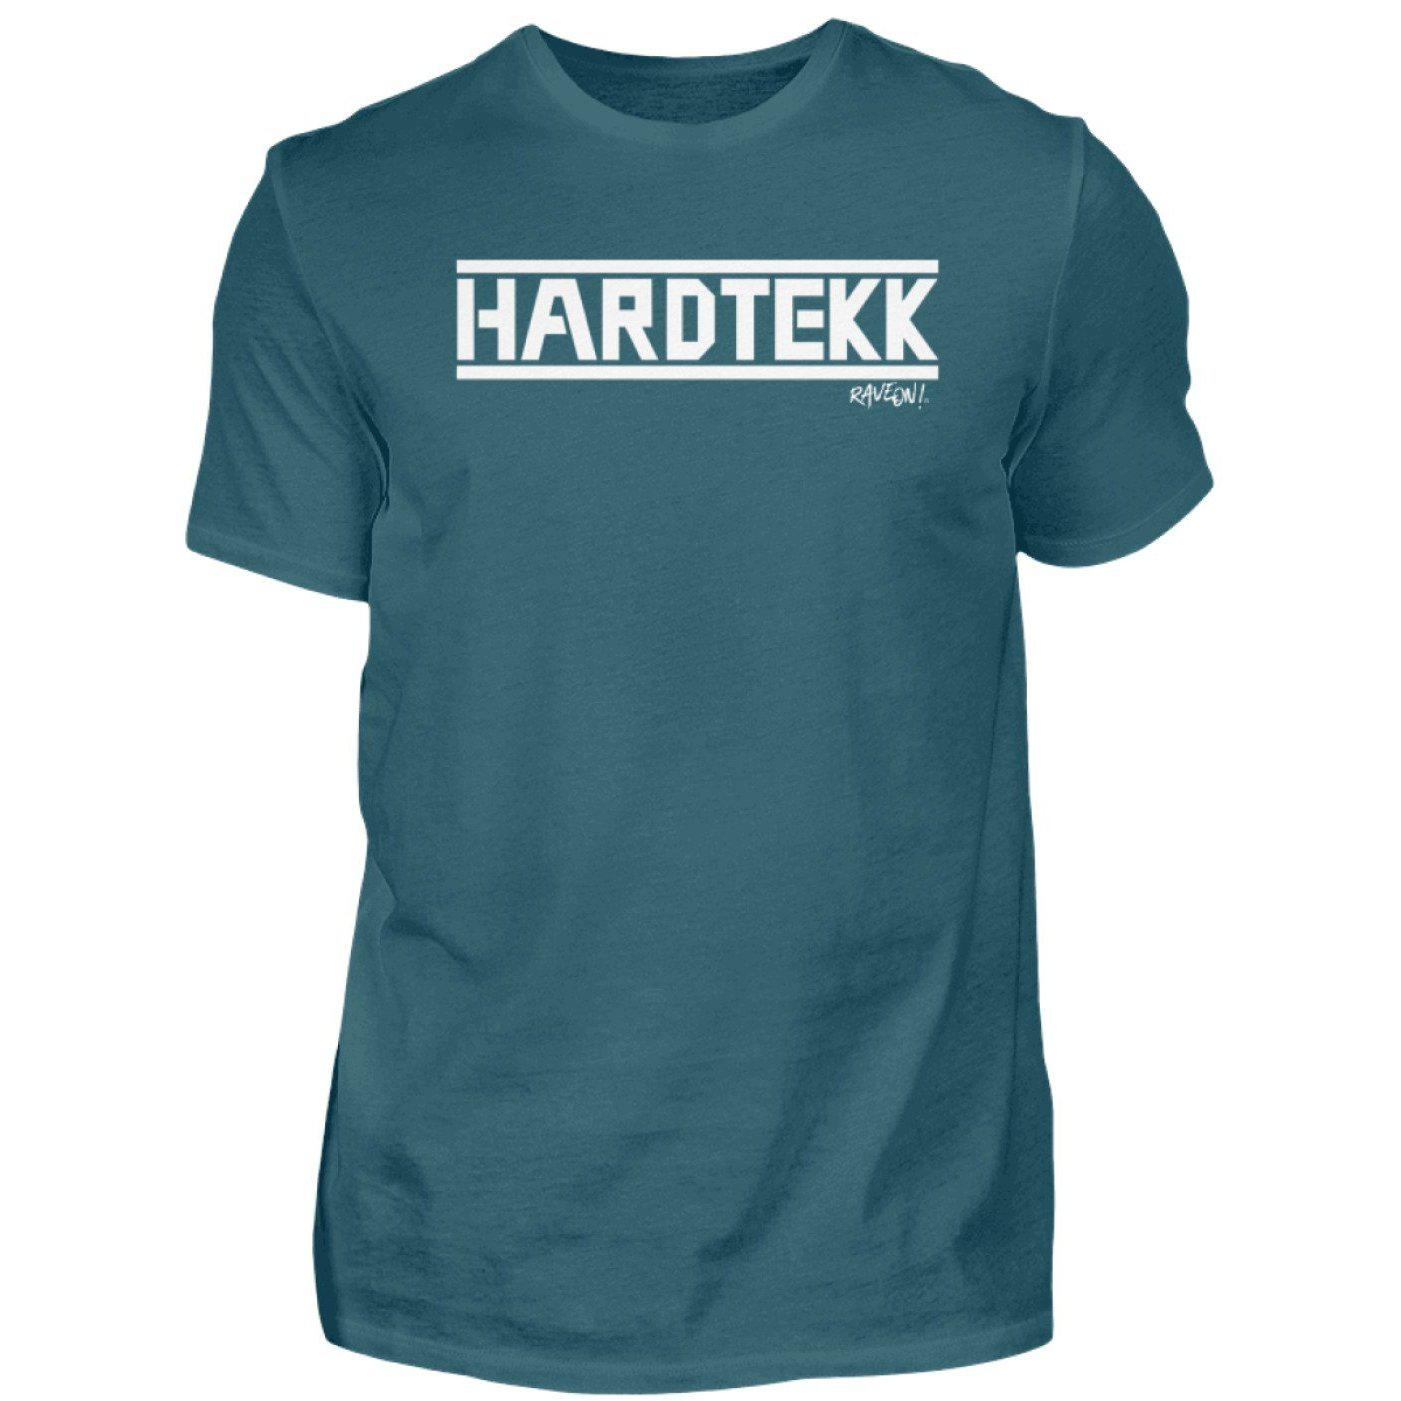 HARDTEKK - Rave On!® - Herren Shirt-Herren Basic T-Shirt-Diva Blue-S-Rave-On! I www.rave-on.shop I Deine Rave & Techno Szene Shop I Design - HARDTEKK - Rave On!®, Global recommendation, hardtekk, on, rave, techno, Tekk, tekkno - Sexy Festival Streetwear , Clubwear & Raver Style